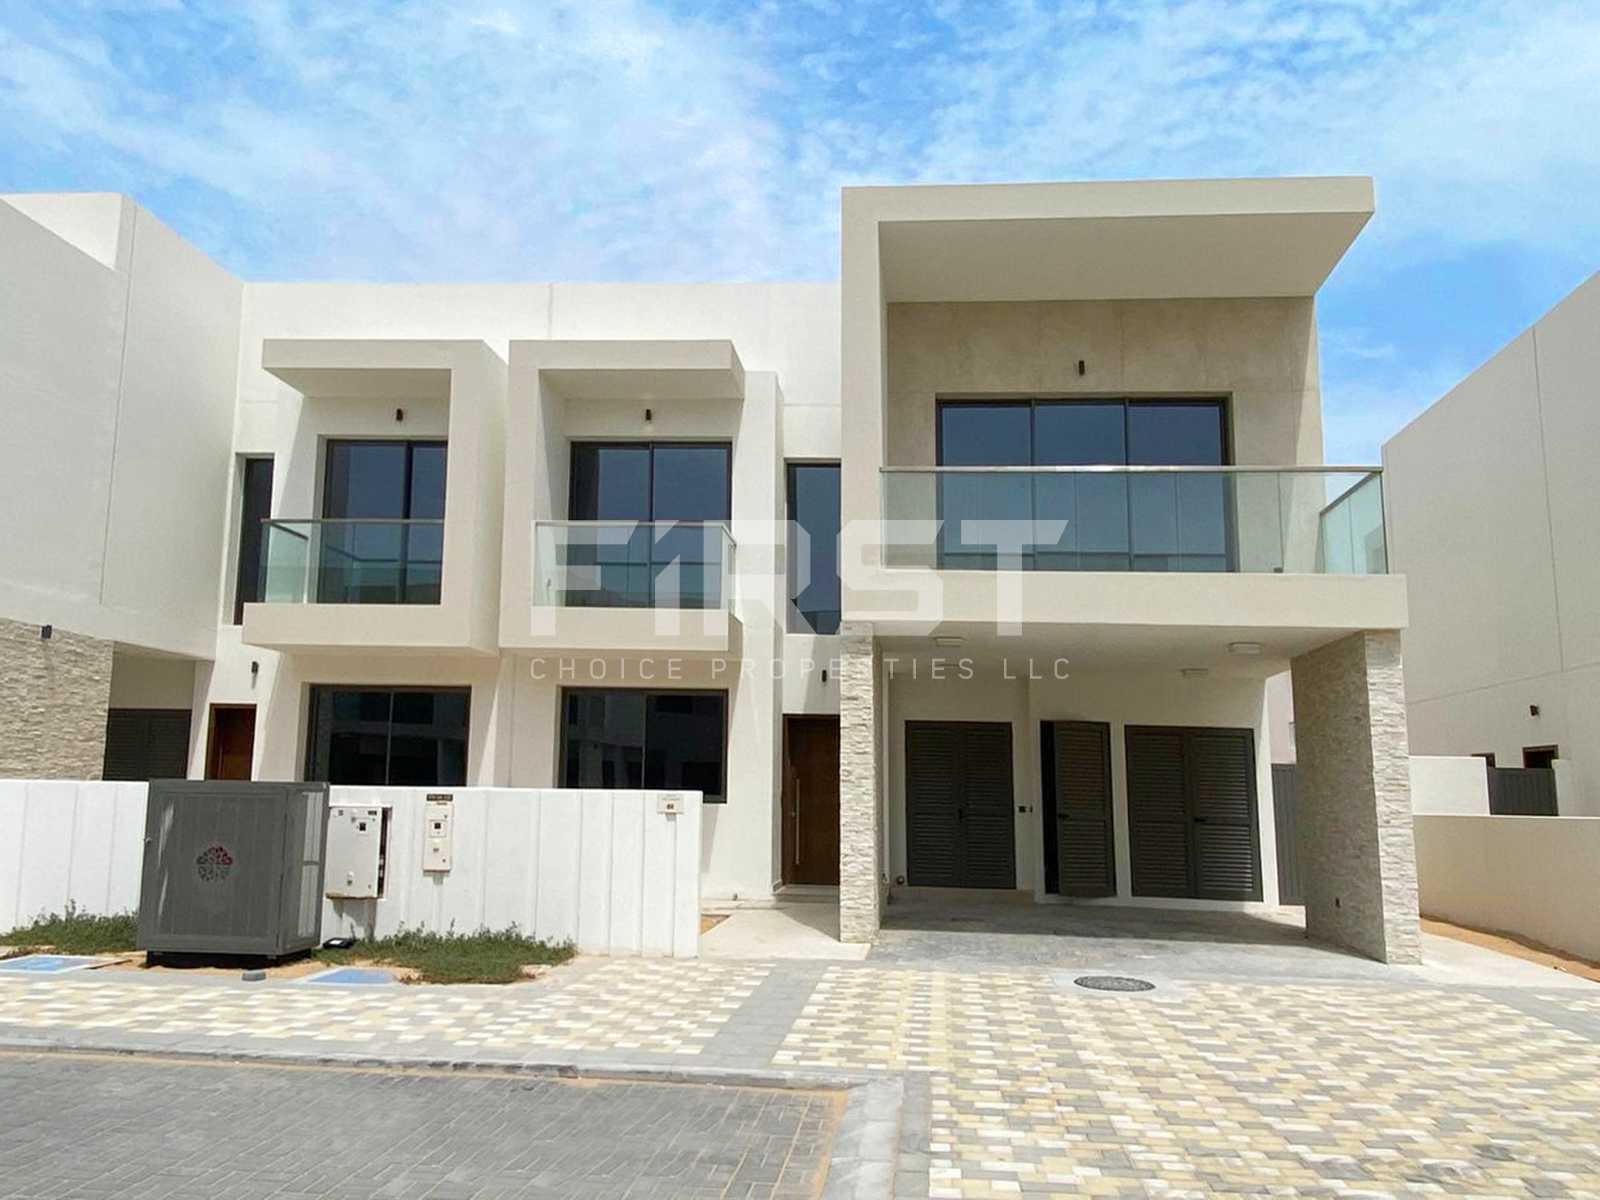 External Photo of 3 Bedroom Duplex Type Y in Yas Acres Yas Island Abu Dhabi UAE (7).jpg